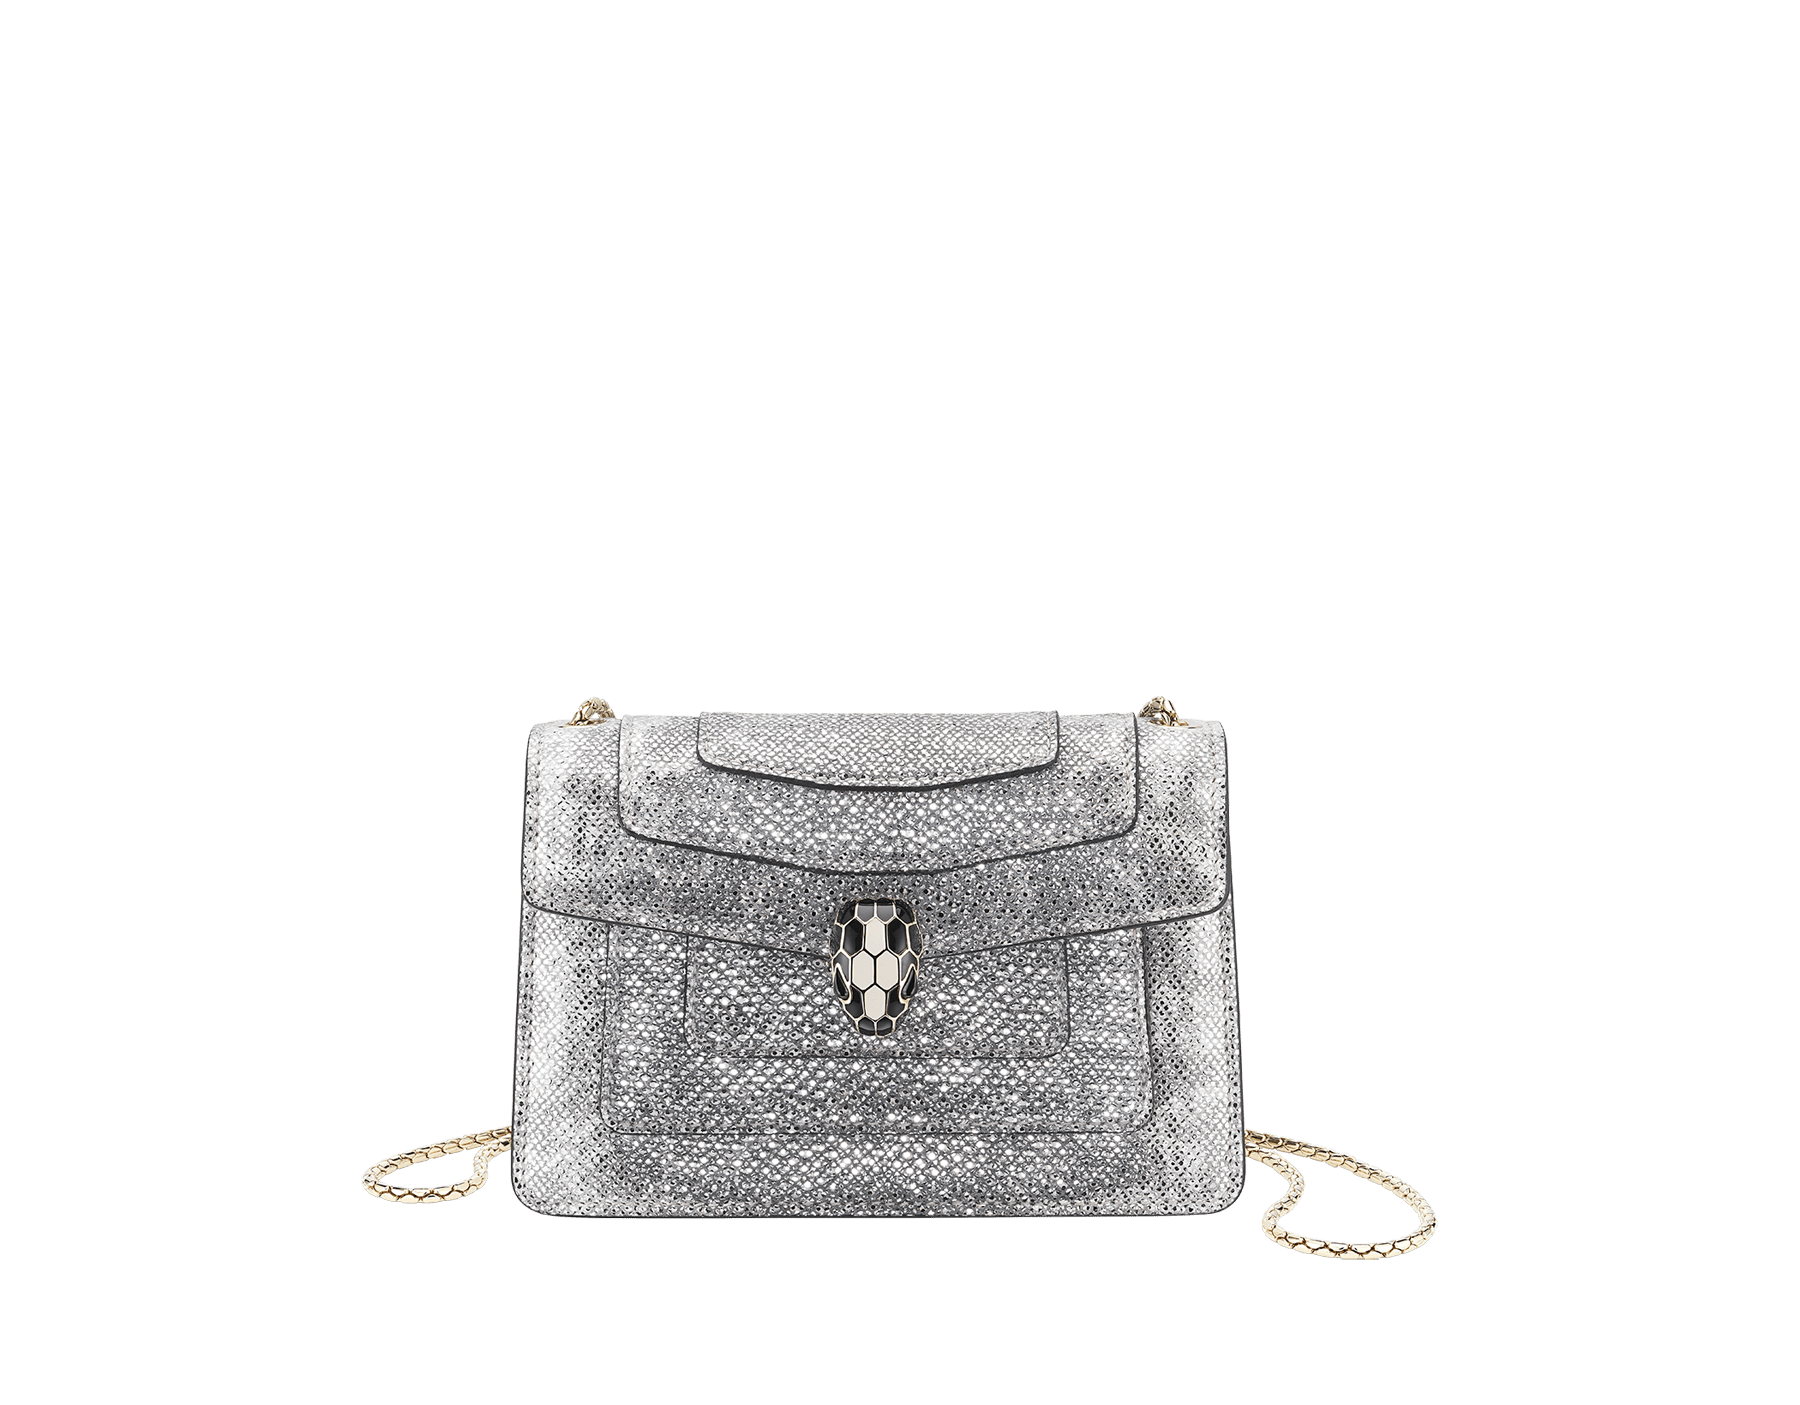 Serpenti Forever mini crossbody bag in white agate metallic karung skin. Brass light gold-plated snake head closure in black and white enamel with black onyx eyes. 986-MK image 1